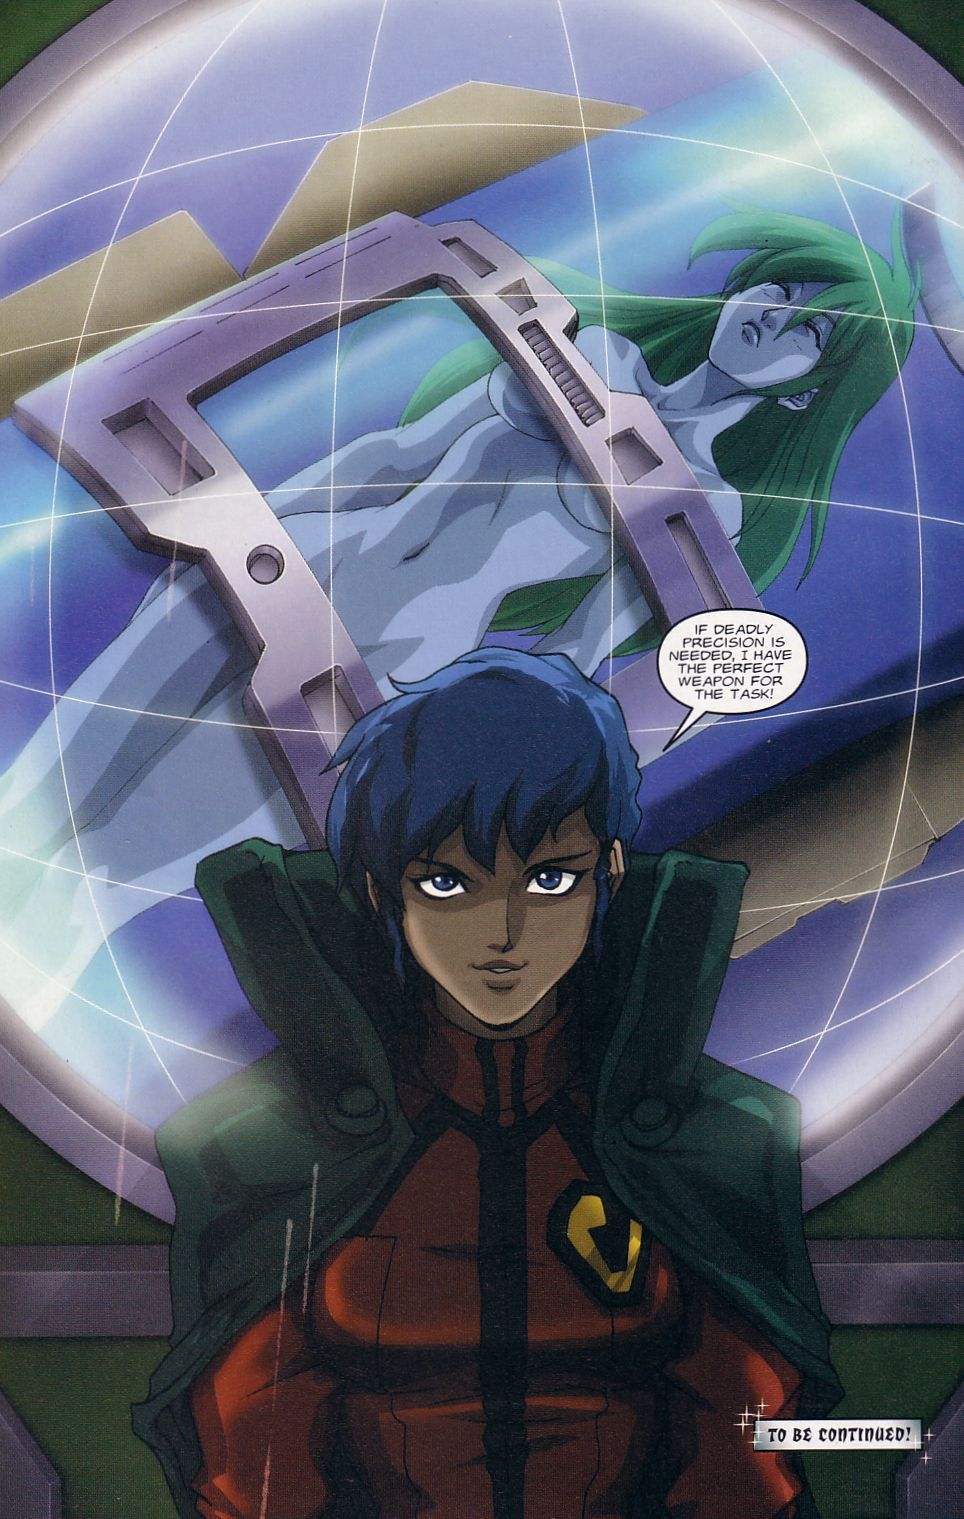 Read online Robotech: Love and War comic -  Issue #1 - 16